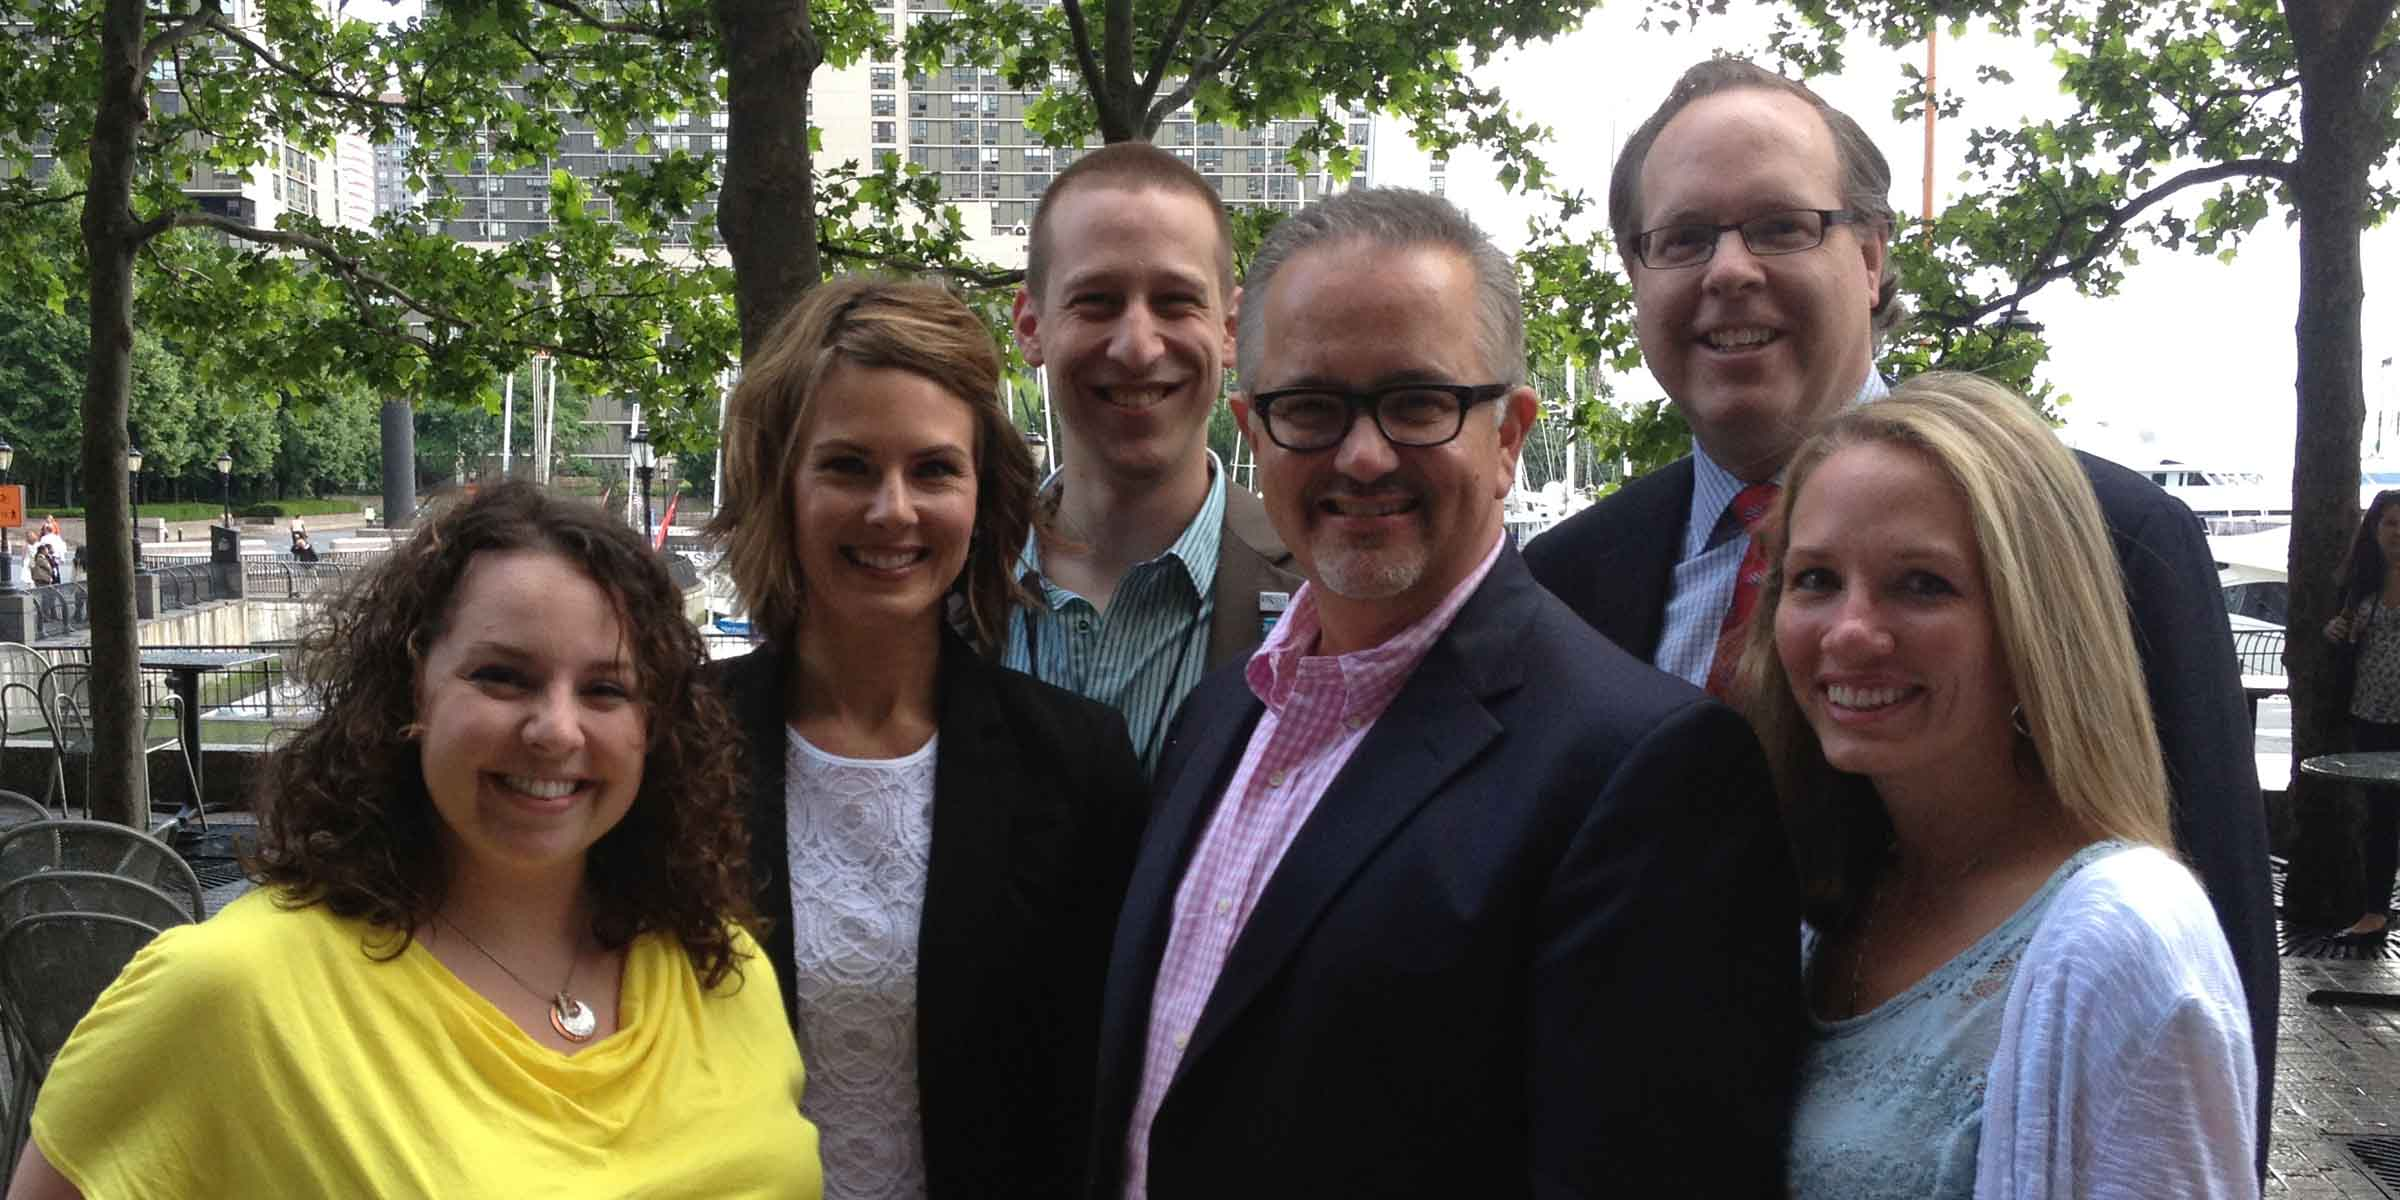 "Lauren Doyle (far left) attended the 2013 Leadership Rally in New York City as part of her role as President-Elect. The annual gathering brings together PRSA leaders from around the country, like those pictured here, to learn from one another in preparation for their Presidency.                 0     0     1     41     238     Powerhouse Factories     1     1     278     14.0                            Normal     0                     false     false     false         EN-US     JA     X-NONE                                                                                                                                                                                                                                                                                                                                                                                                                                                                                                                                                                                                                                                                                                                    /* Style Definitions */ table.MsoNormalTable 	{mso-style-name:""Table Normal""; 	mso-tstyle-rowband-size:0; 	mso-tstyle-colband-size:0; 	mso-style-noshow:yes; 	mso-style-priority:99; 	mso-style-parent:""""; 	mso-padding-alt:0in 5.4pt 0in 5.4pt; 	mso-para-margin-top:0in; 	mso-para-margin-right:0in; 	mso-para-margin-bottom:10.0pt; 	mso-para-margin-left:0in; 	line-height:115%; 	mso-pagination:widow-orphan; 	font-size:11.0pt; 	font-family:Calibri; 	mso-ascii-font-family:Calibri; 	mso-ascii-theme-font:minor-latin; 	mso-hansi-font-family:Calibri; 	mso-hansi-theme-font:minor-latin;}"